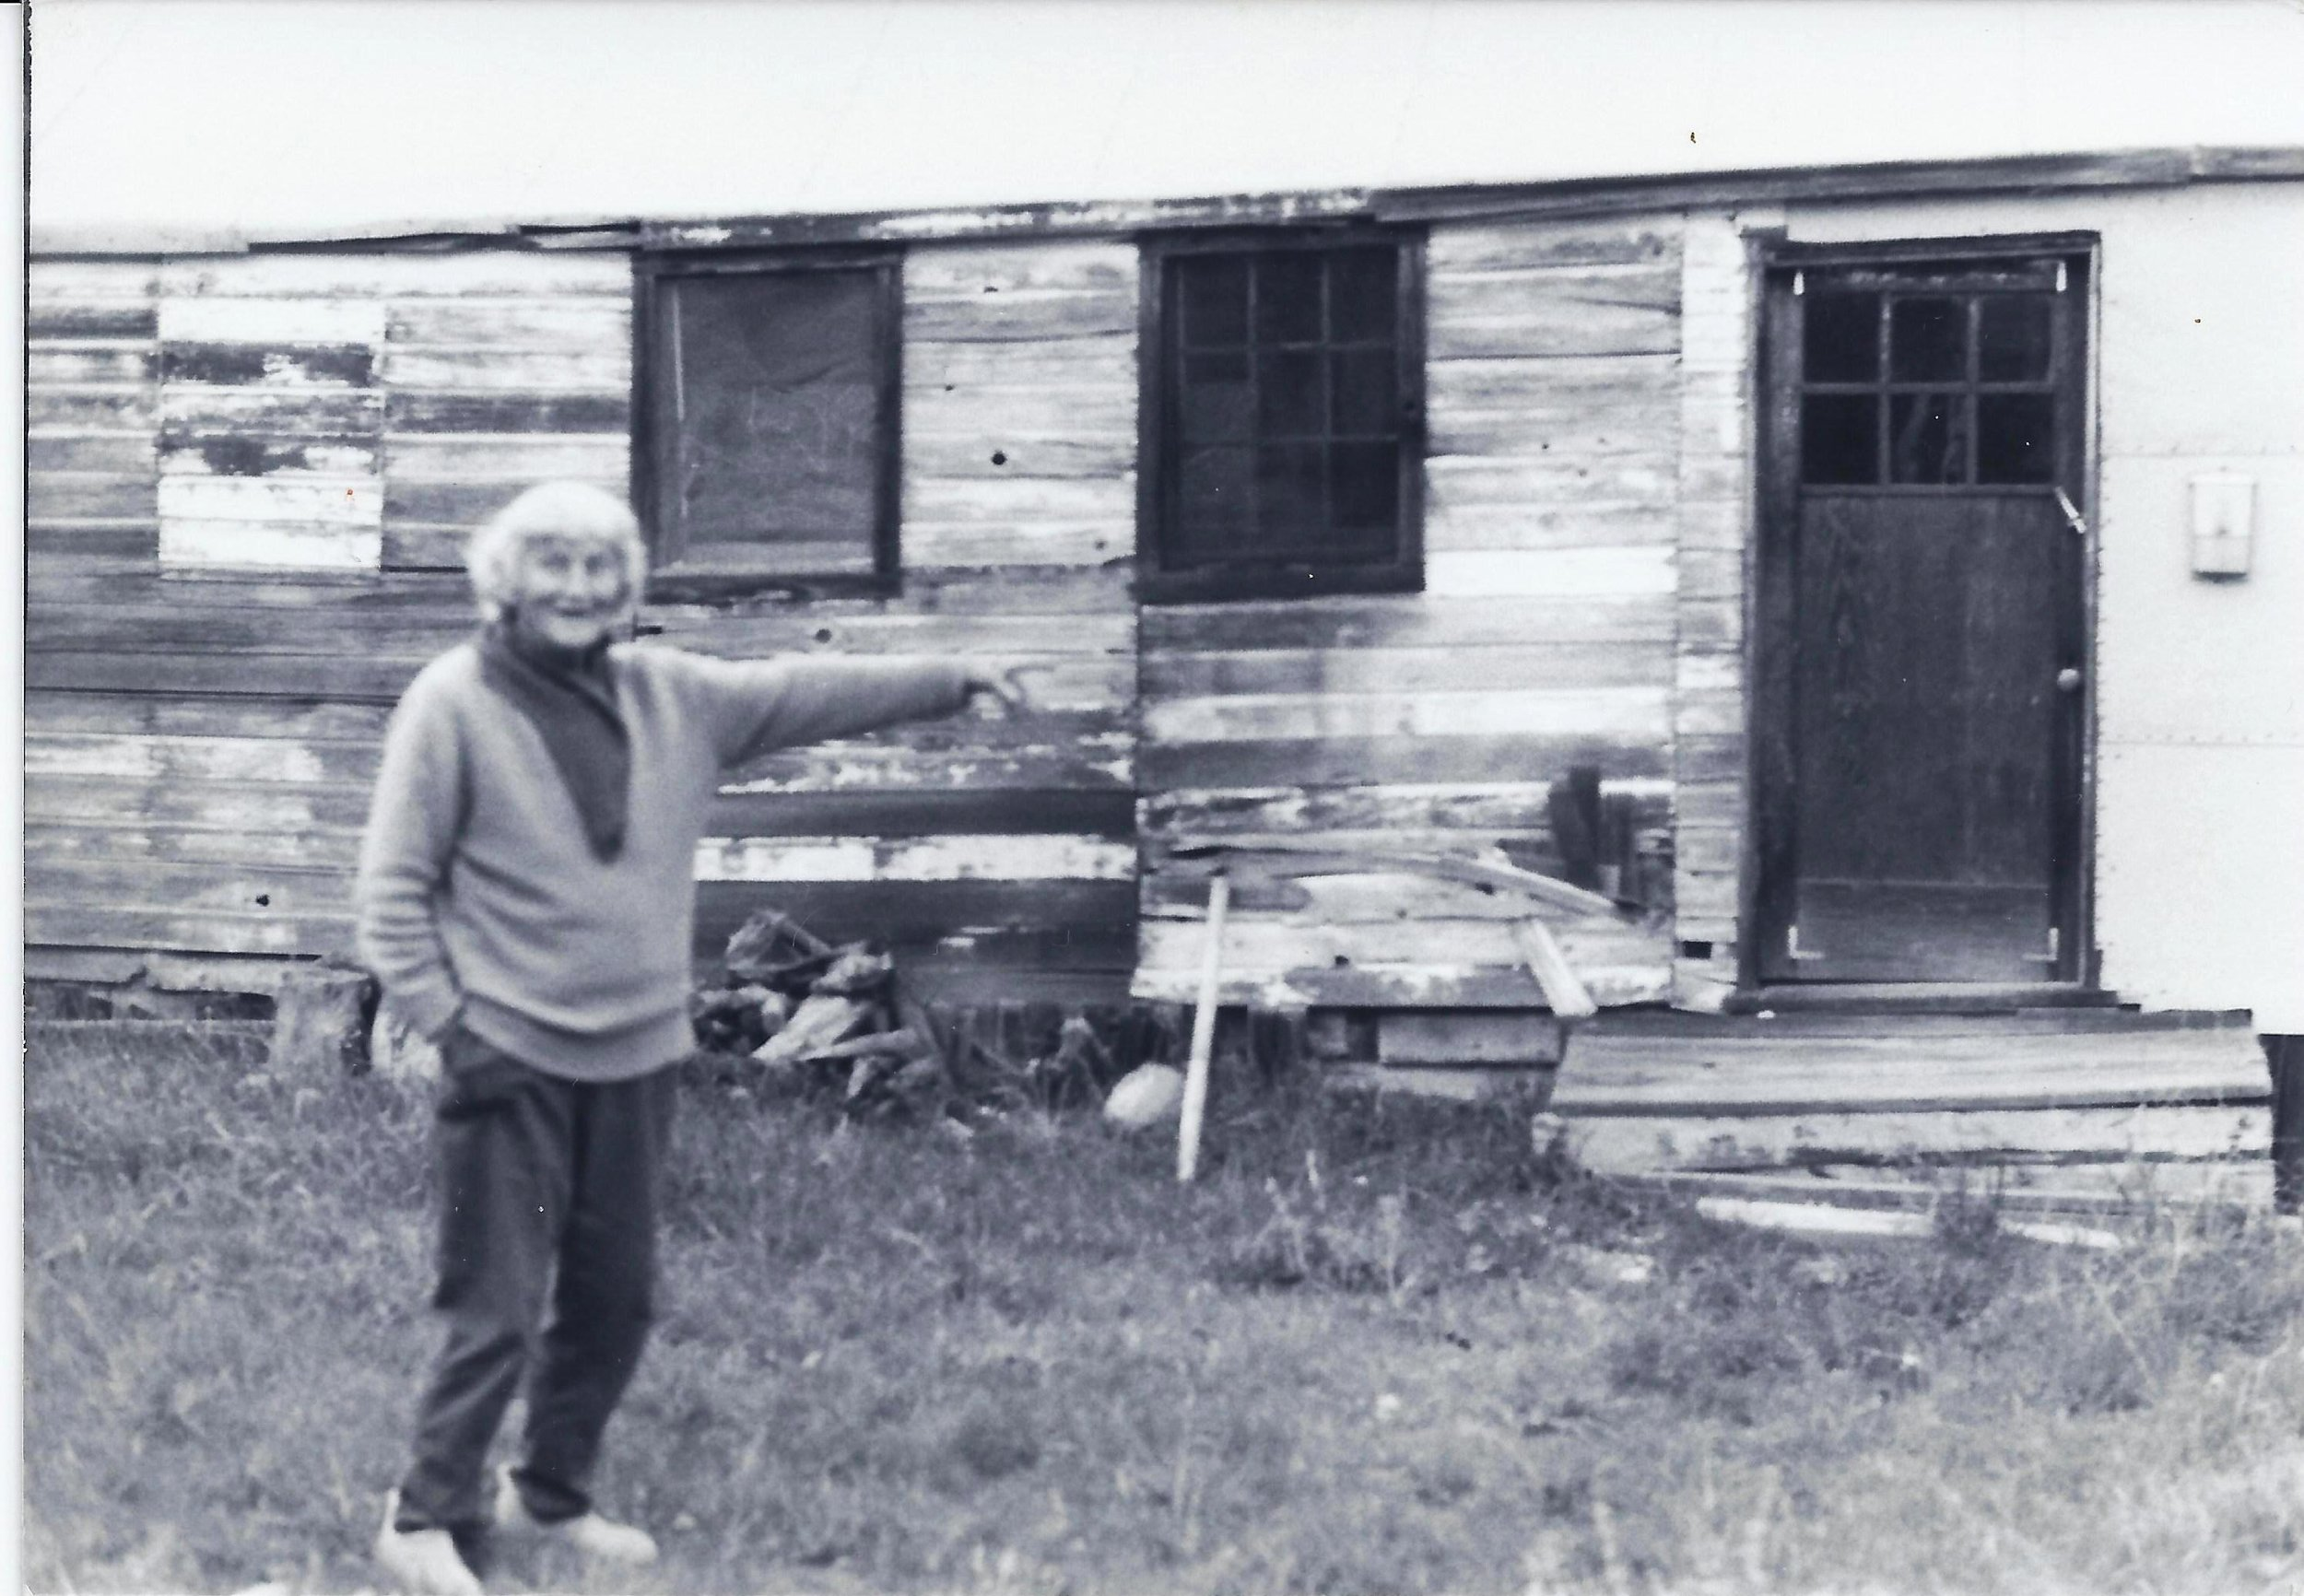 """AGNES BARON in the early 1980s pointing to the """"white house,"""" the army carpenter's shed brought onto the property to house Meher Baba's  mandali  (close disciples) for His planned 1952 visit to Meher Mount. Agnes (1907-1994) was a co-founder and lifetime caretaker for Meher Mount."""